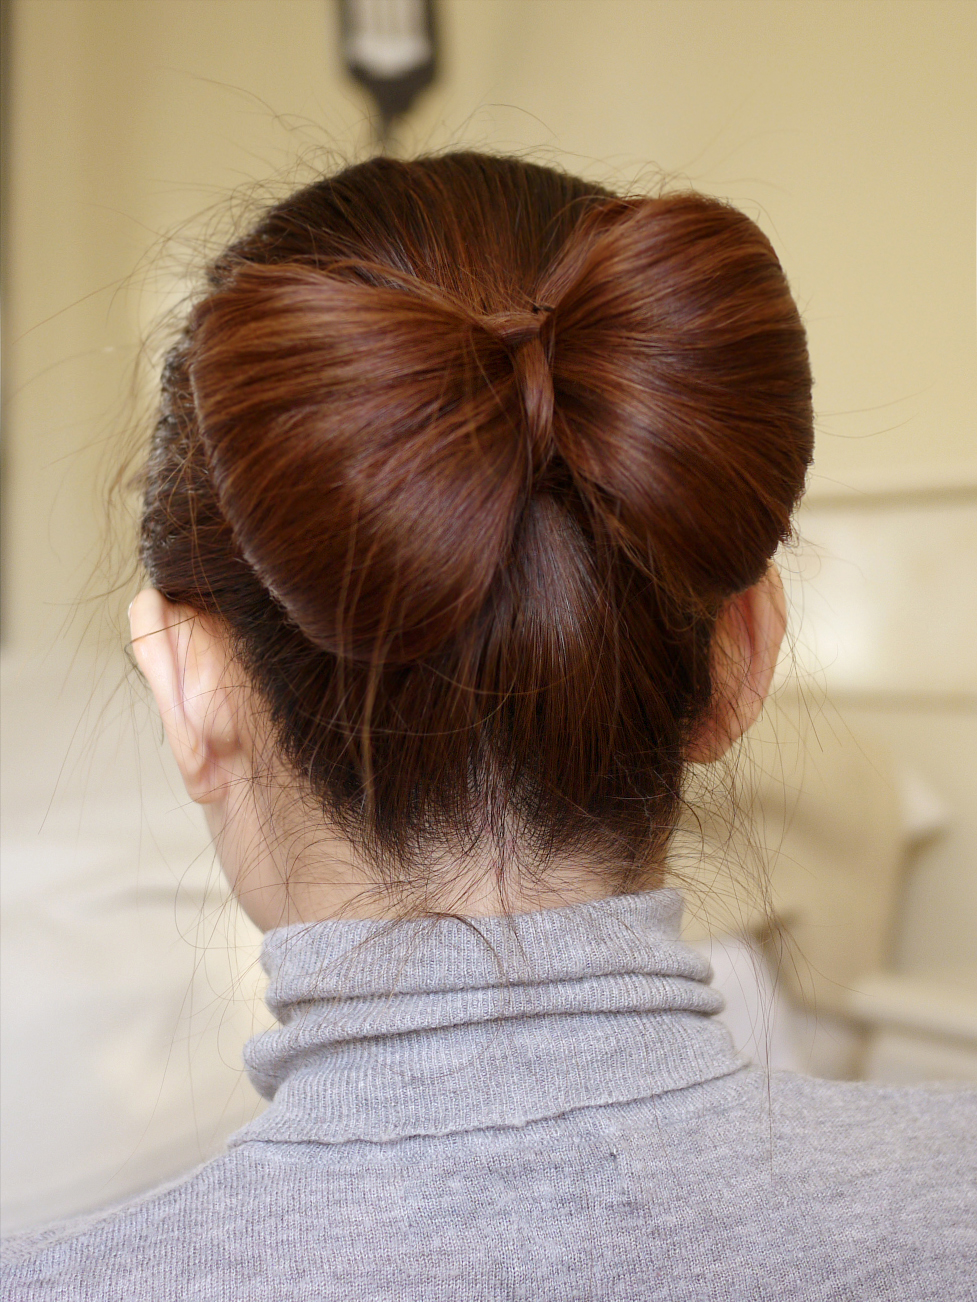 How to hair bow hairstyle the fashion foot a bow did not have a creative bone in their bodies you can do it with your hair and i have 6 steps to teach you how to do it keep reading urmus Choice Image